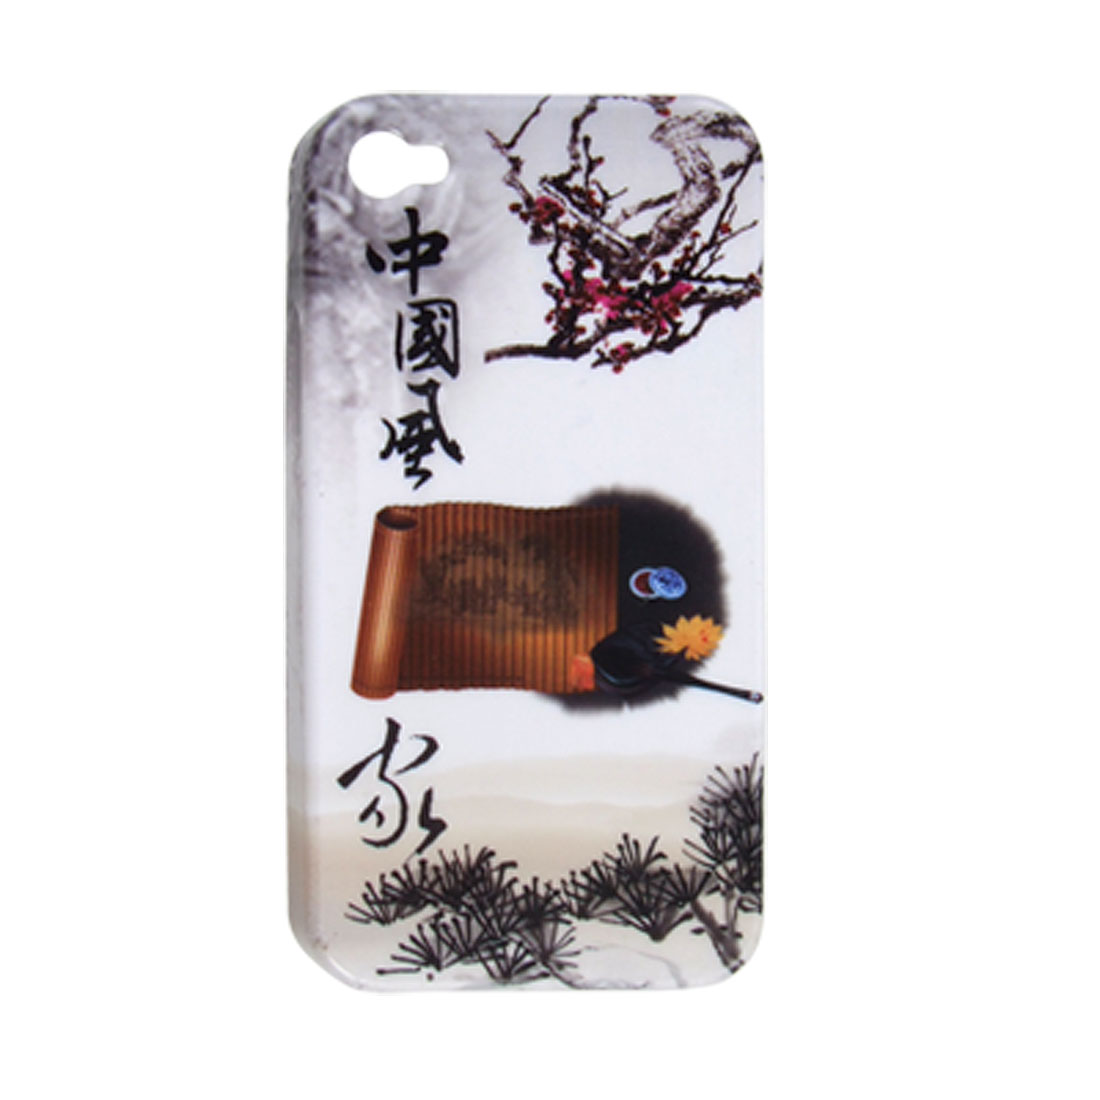 Chinese Ink Painting Hard Plastic Cover for iPhone 4 4G